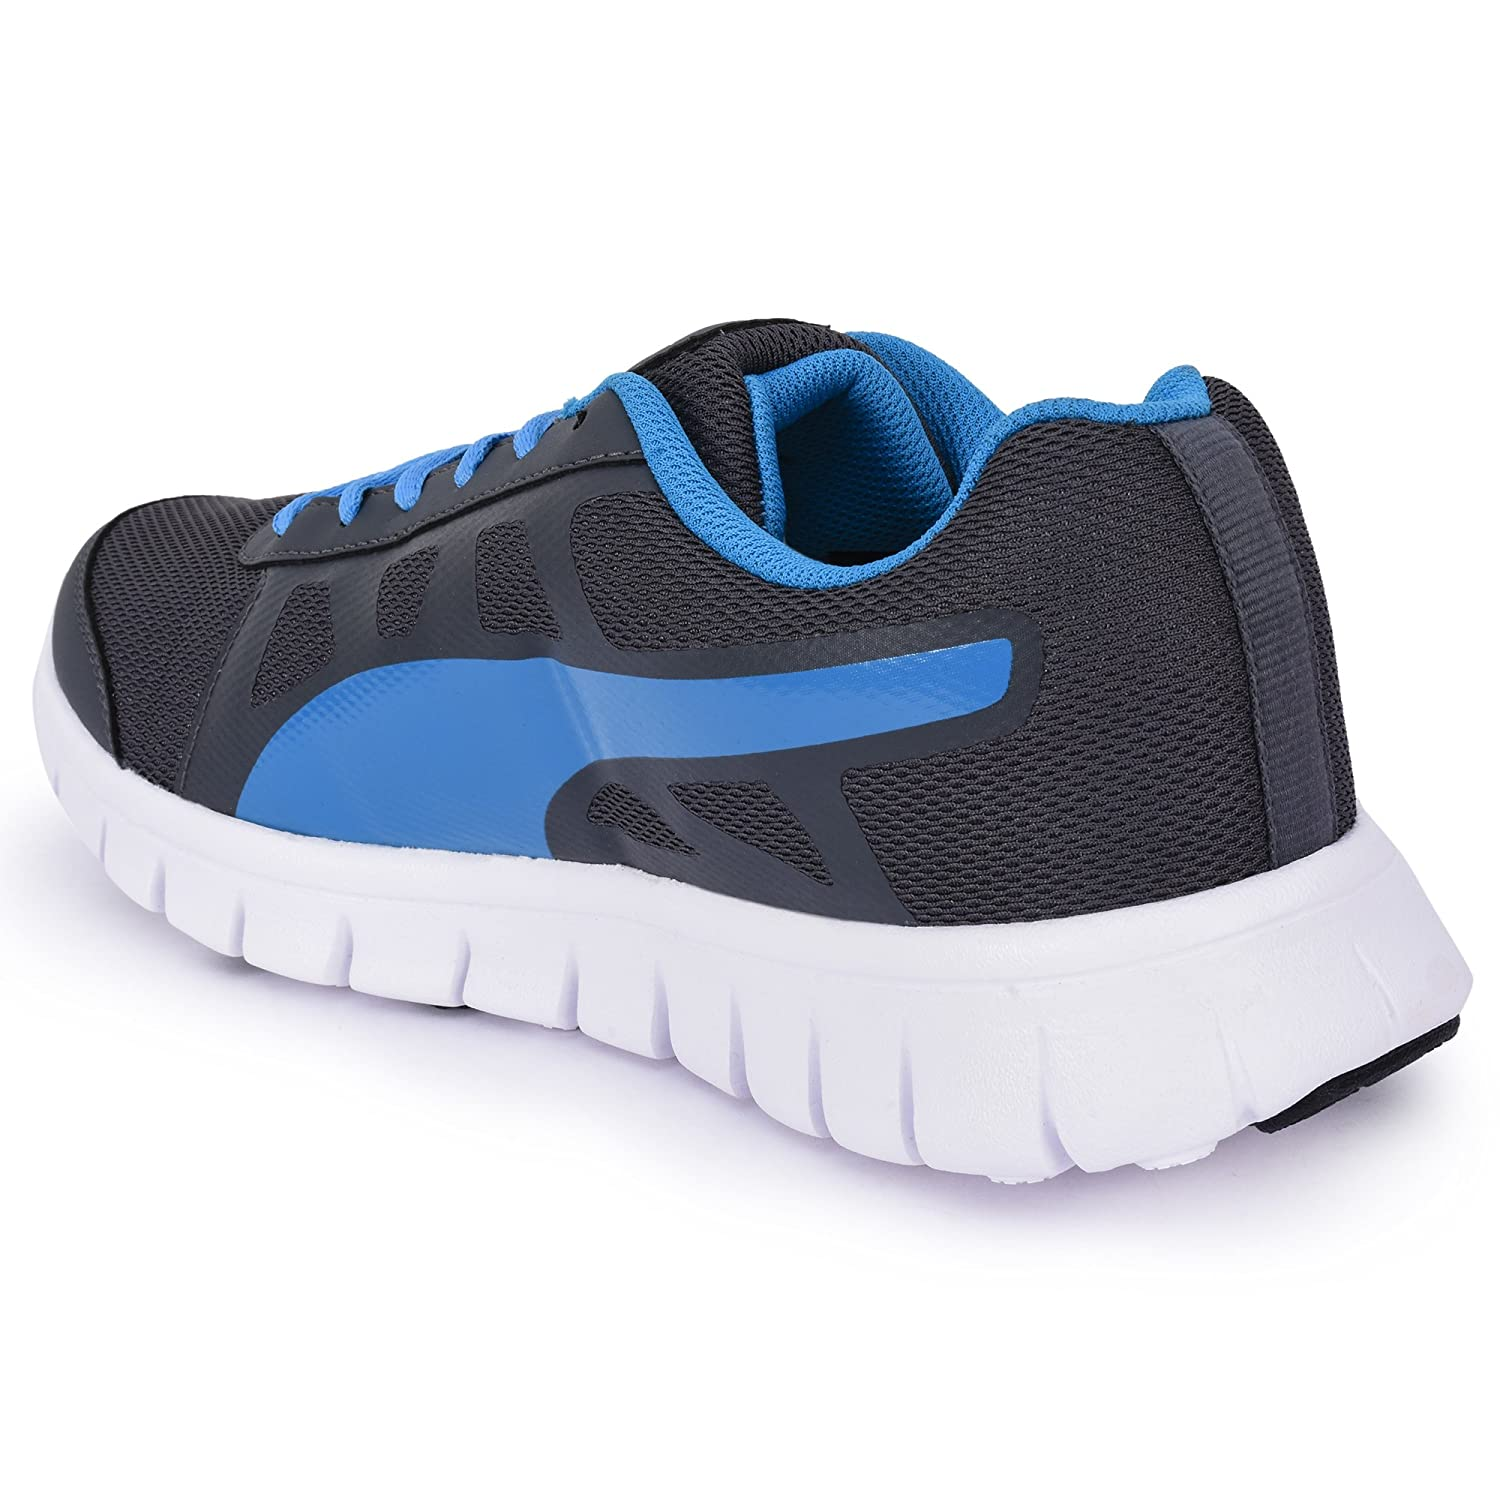 a1ee7a7a228a PUMA Men s Blue Running Sports Shoes 702 COMBO OFFER-3 Pairs of PUMA Socks  FREE-UK-9  Buy Online at Low Prices in India - Amazon.in